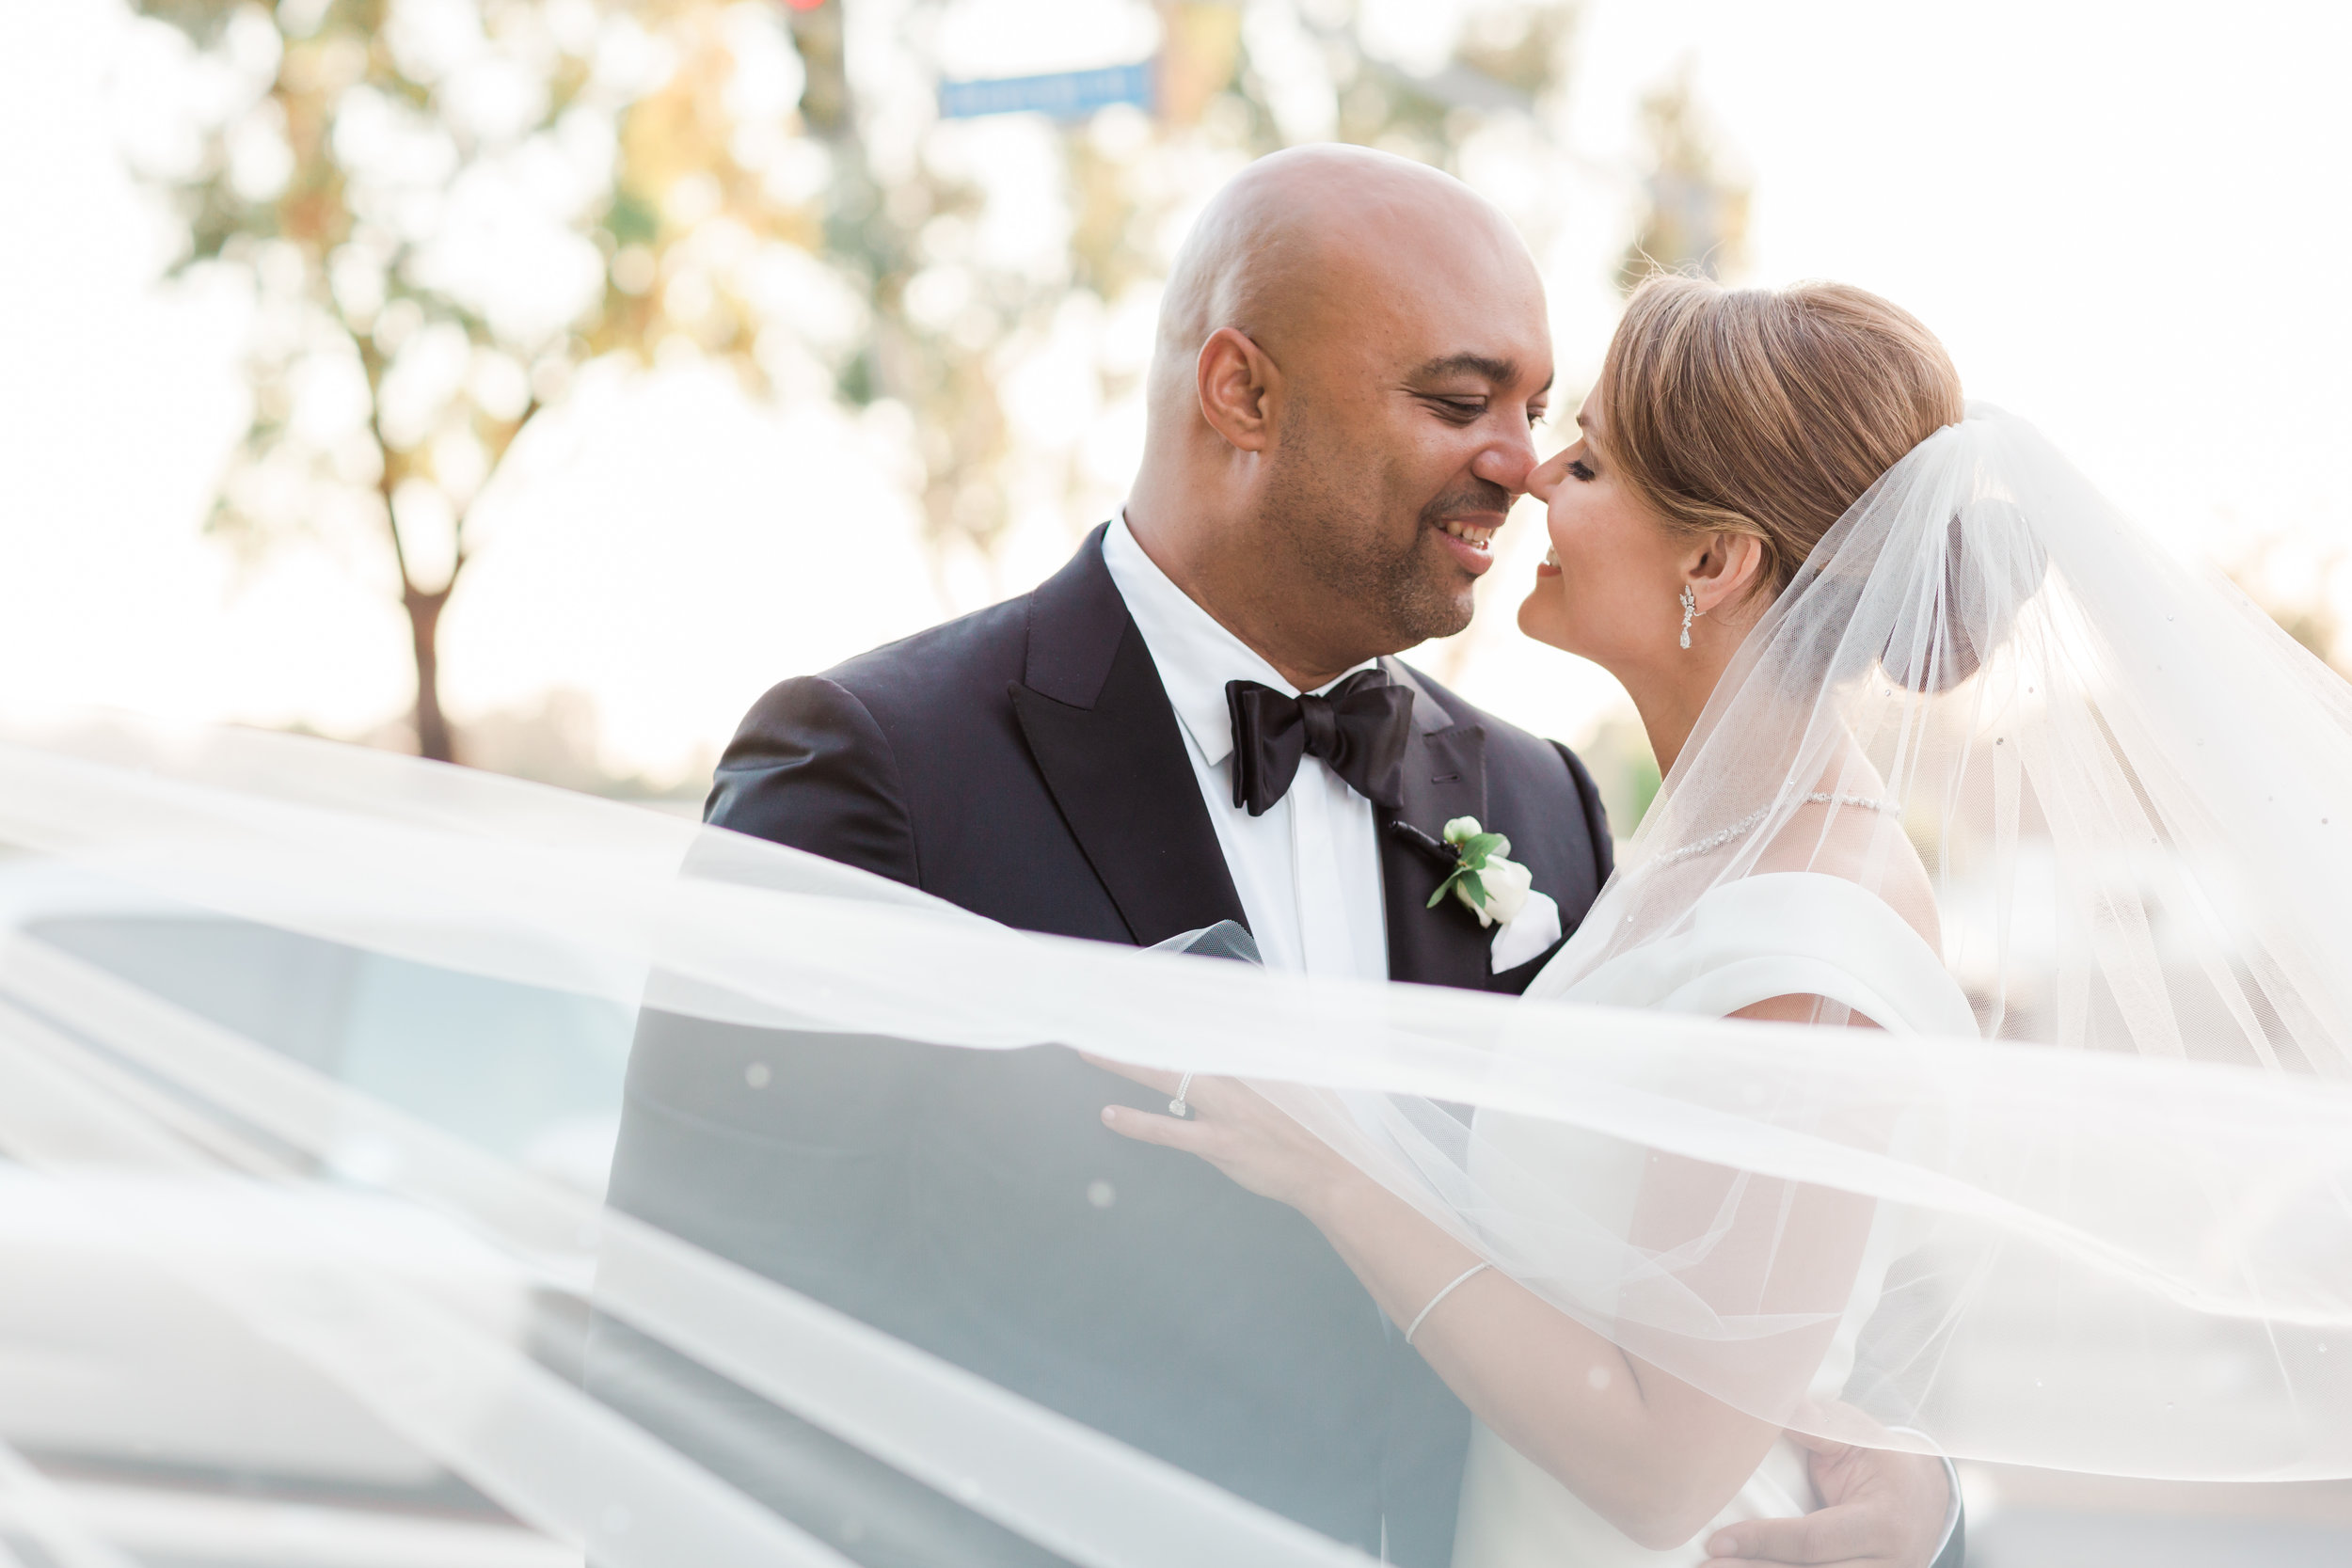 Mr. C Beverly Hills Wedding_Valorie Darling Photography-9270.jpg